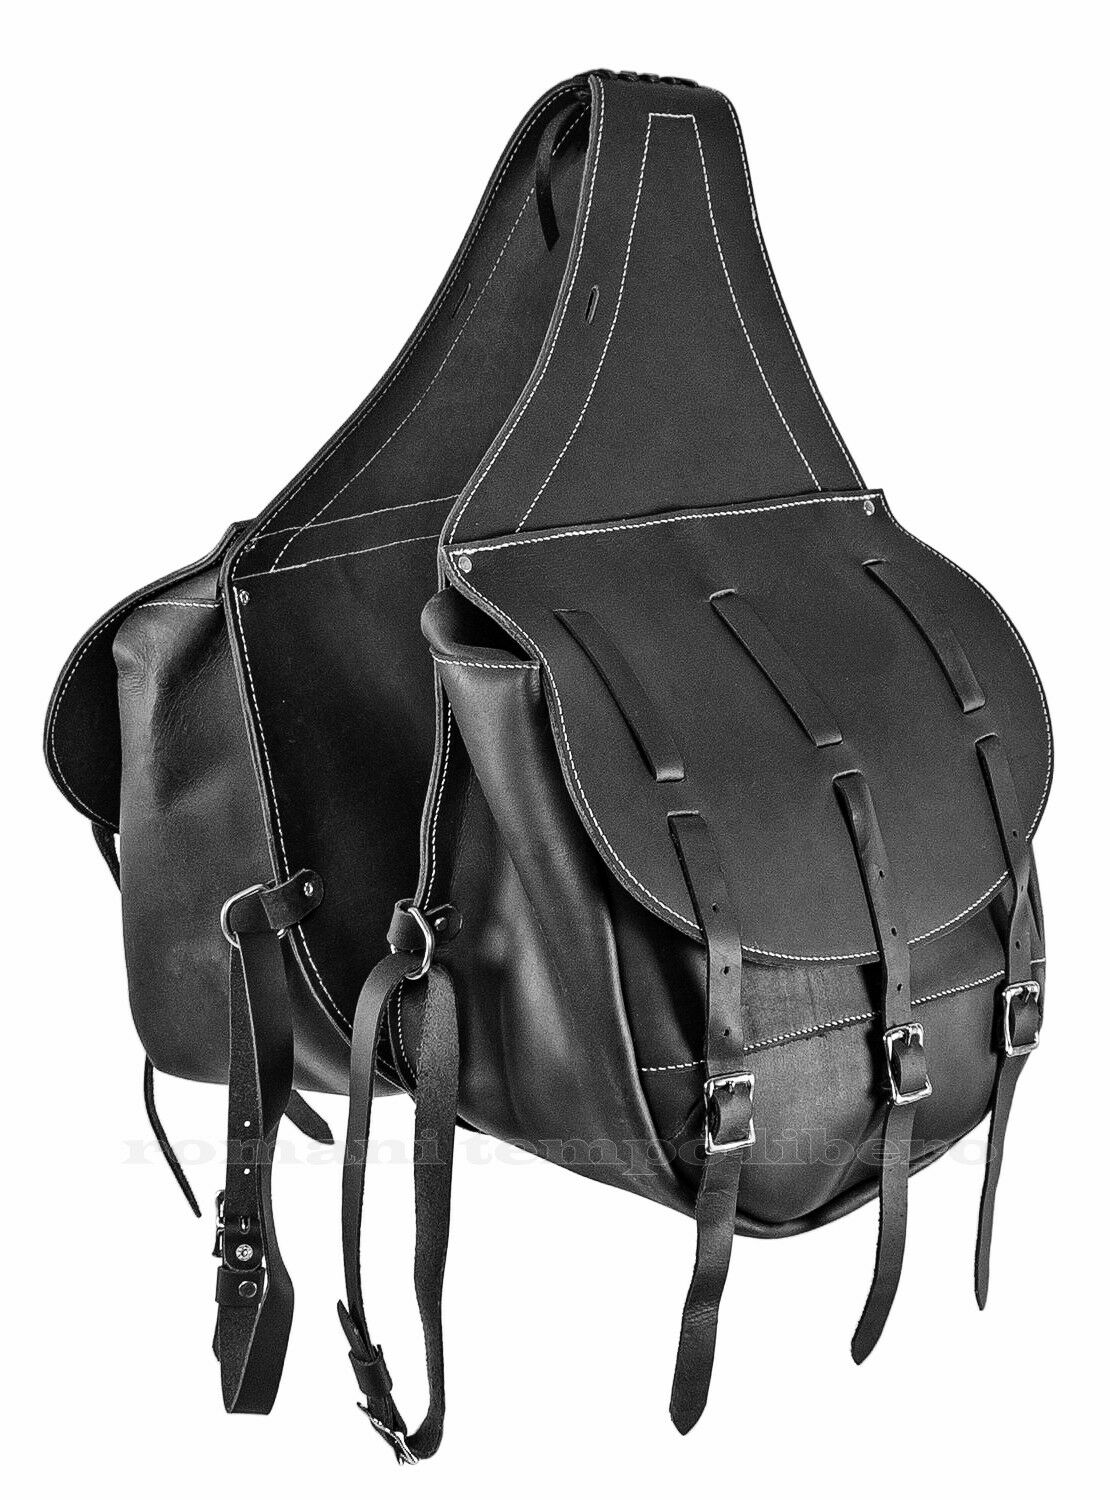 Bisacce posteriore per sella in cuoio con tre lacci saddlebags calfskin leather